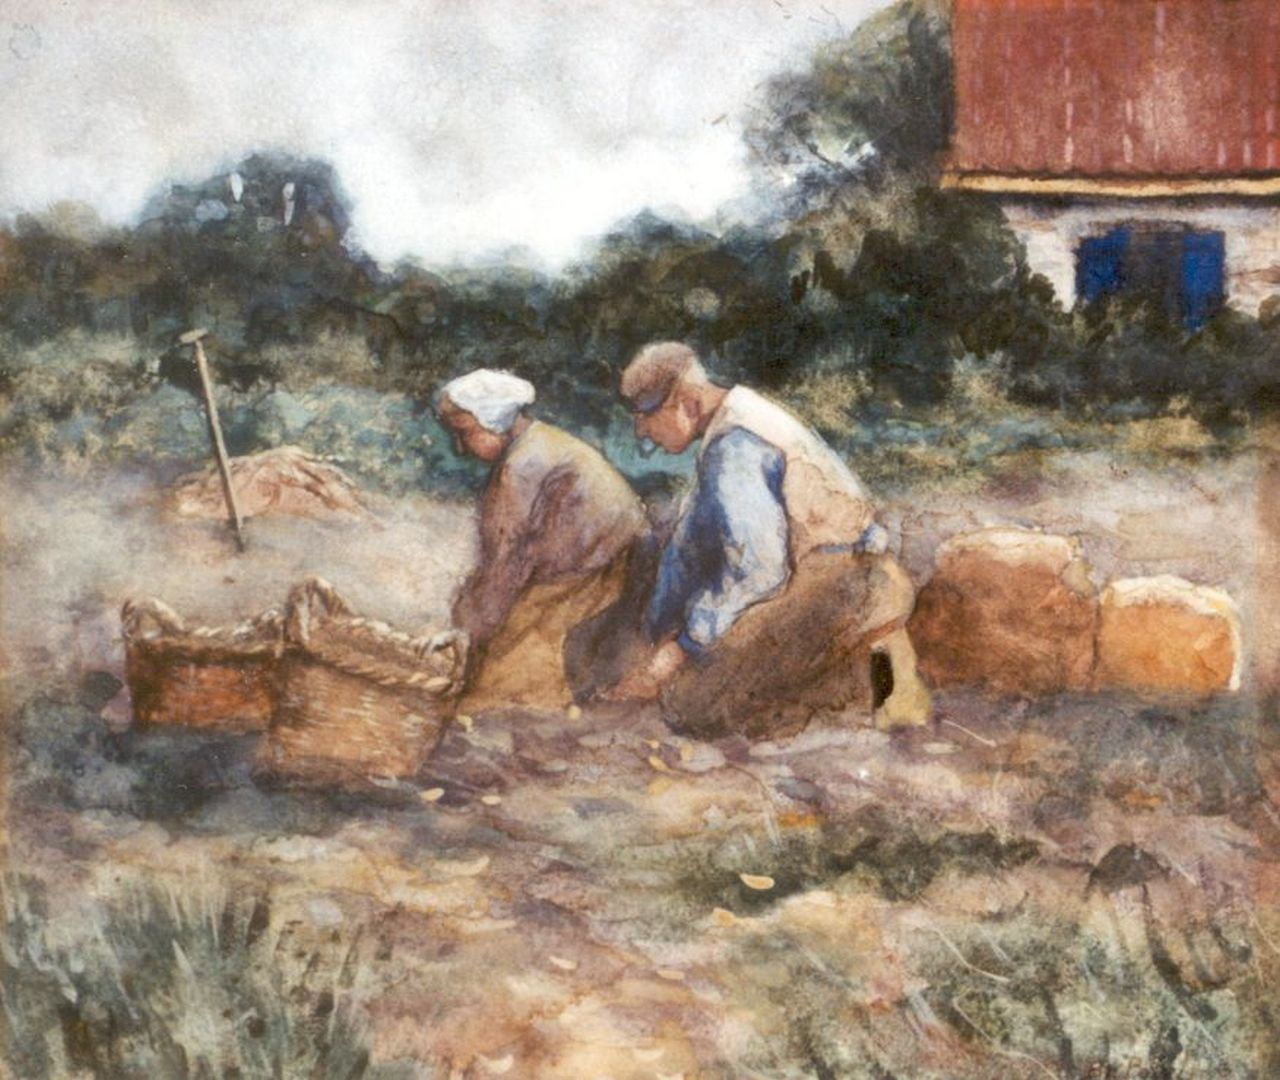 Polvliet B.J.A.  | 'Barend' Jan Abraham Polvliet, Digging up potatoes, watercolour on paper 25.5 x 29.0 cm, signed l.r.